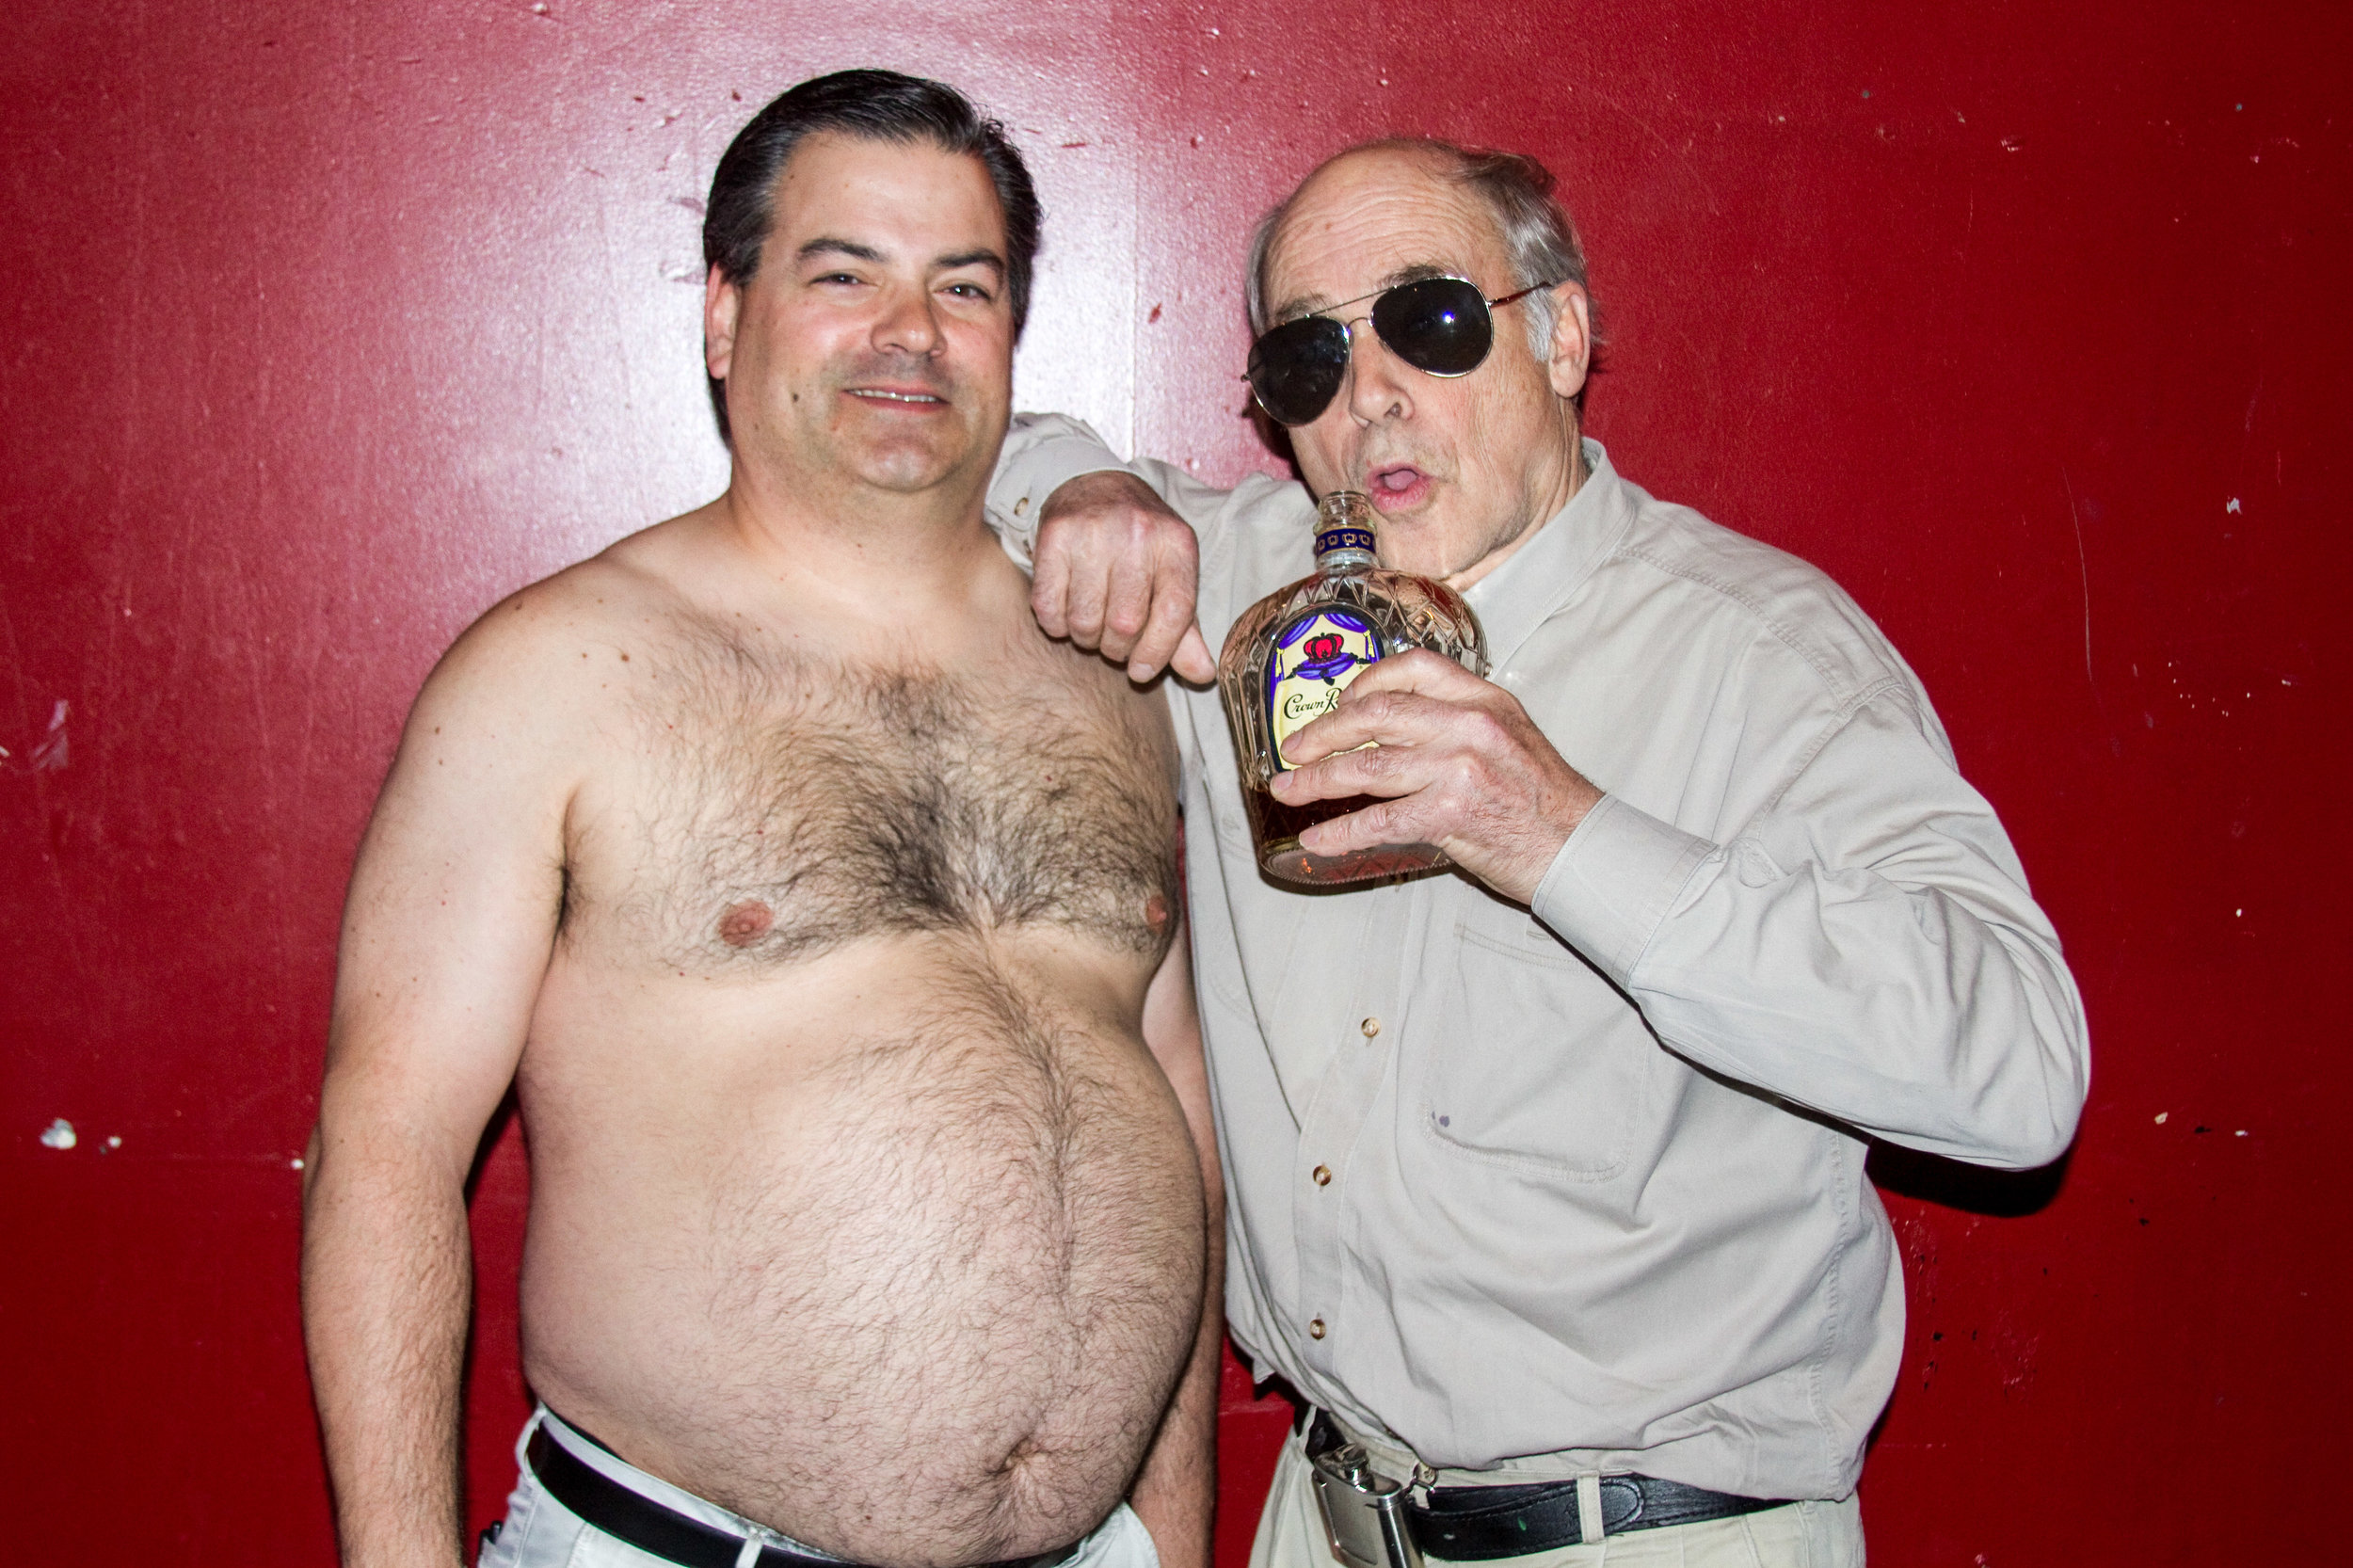 Though his character, Jim Lahey,often drank to a stupor in the show, John rarely drank alcohol.He said that when fans would ask him to drink with them, he'd often pretend to drink, or distract them with a laugh long enough for him to set it aside.